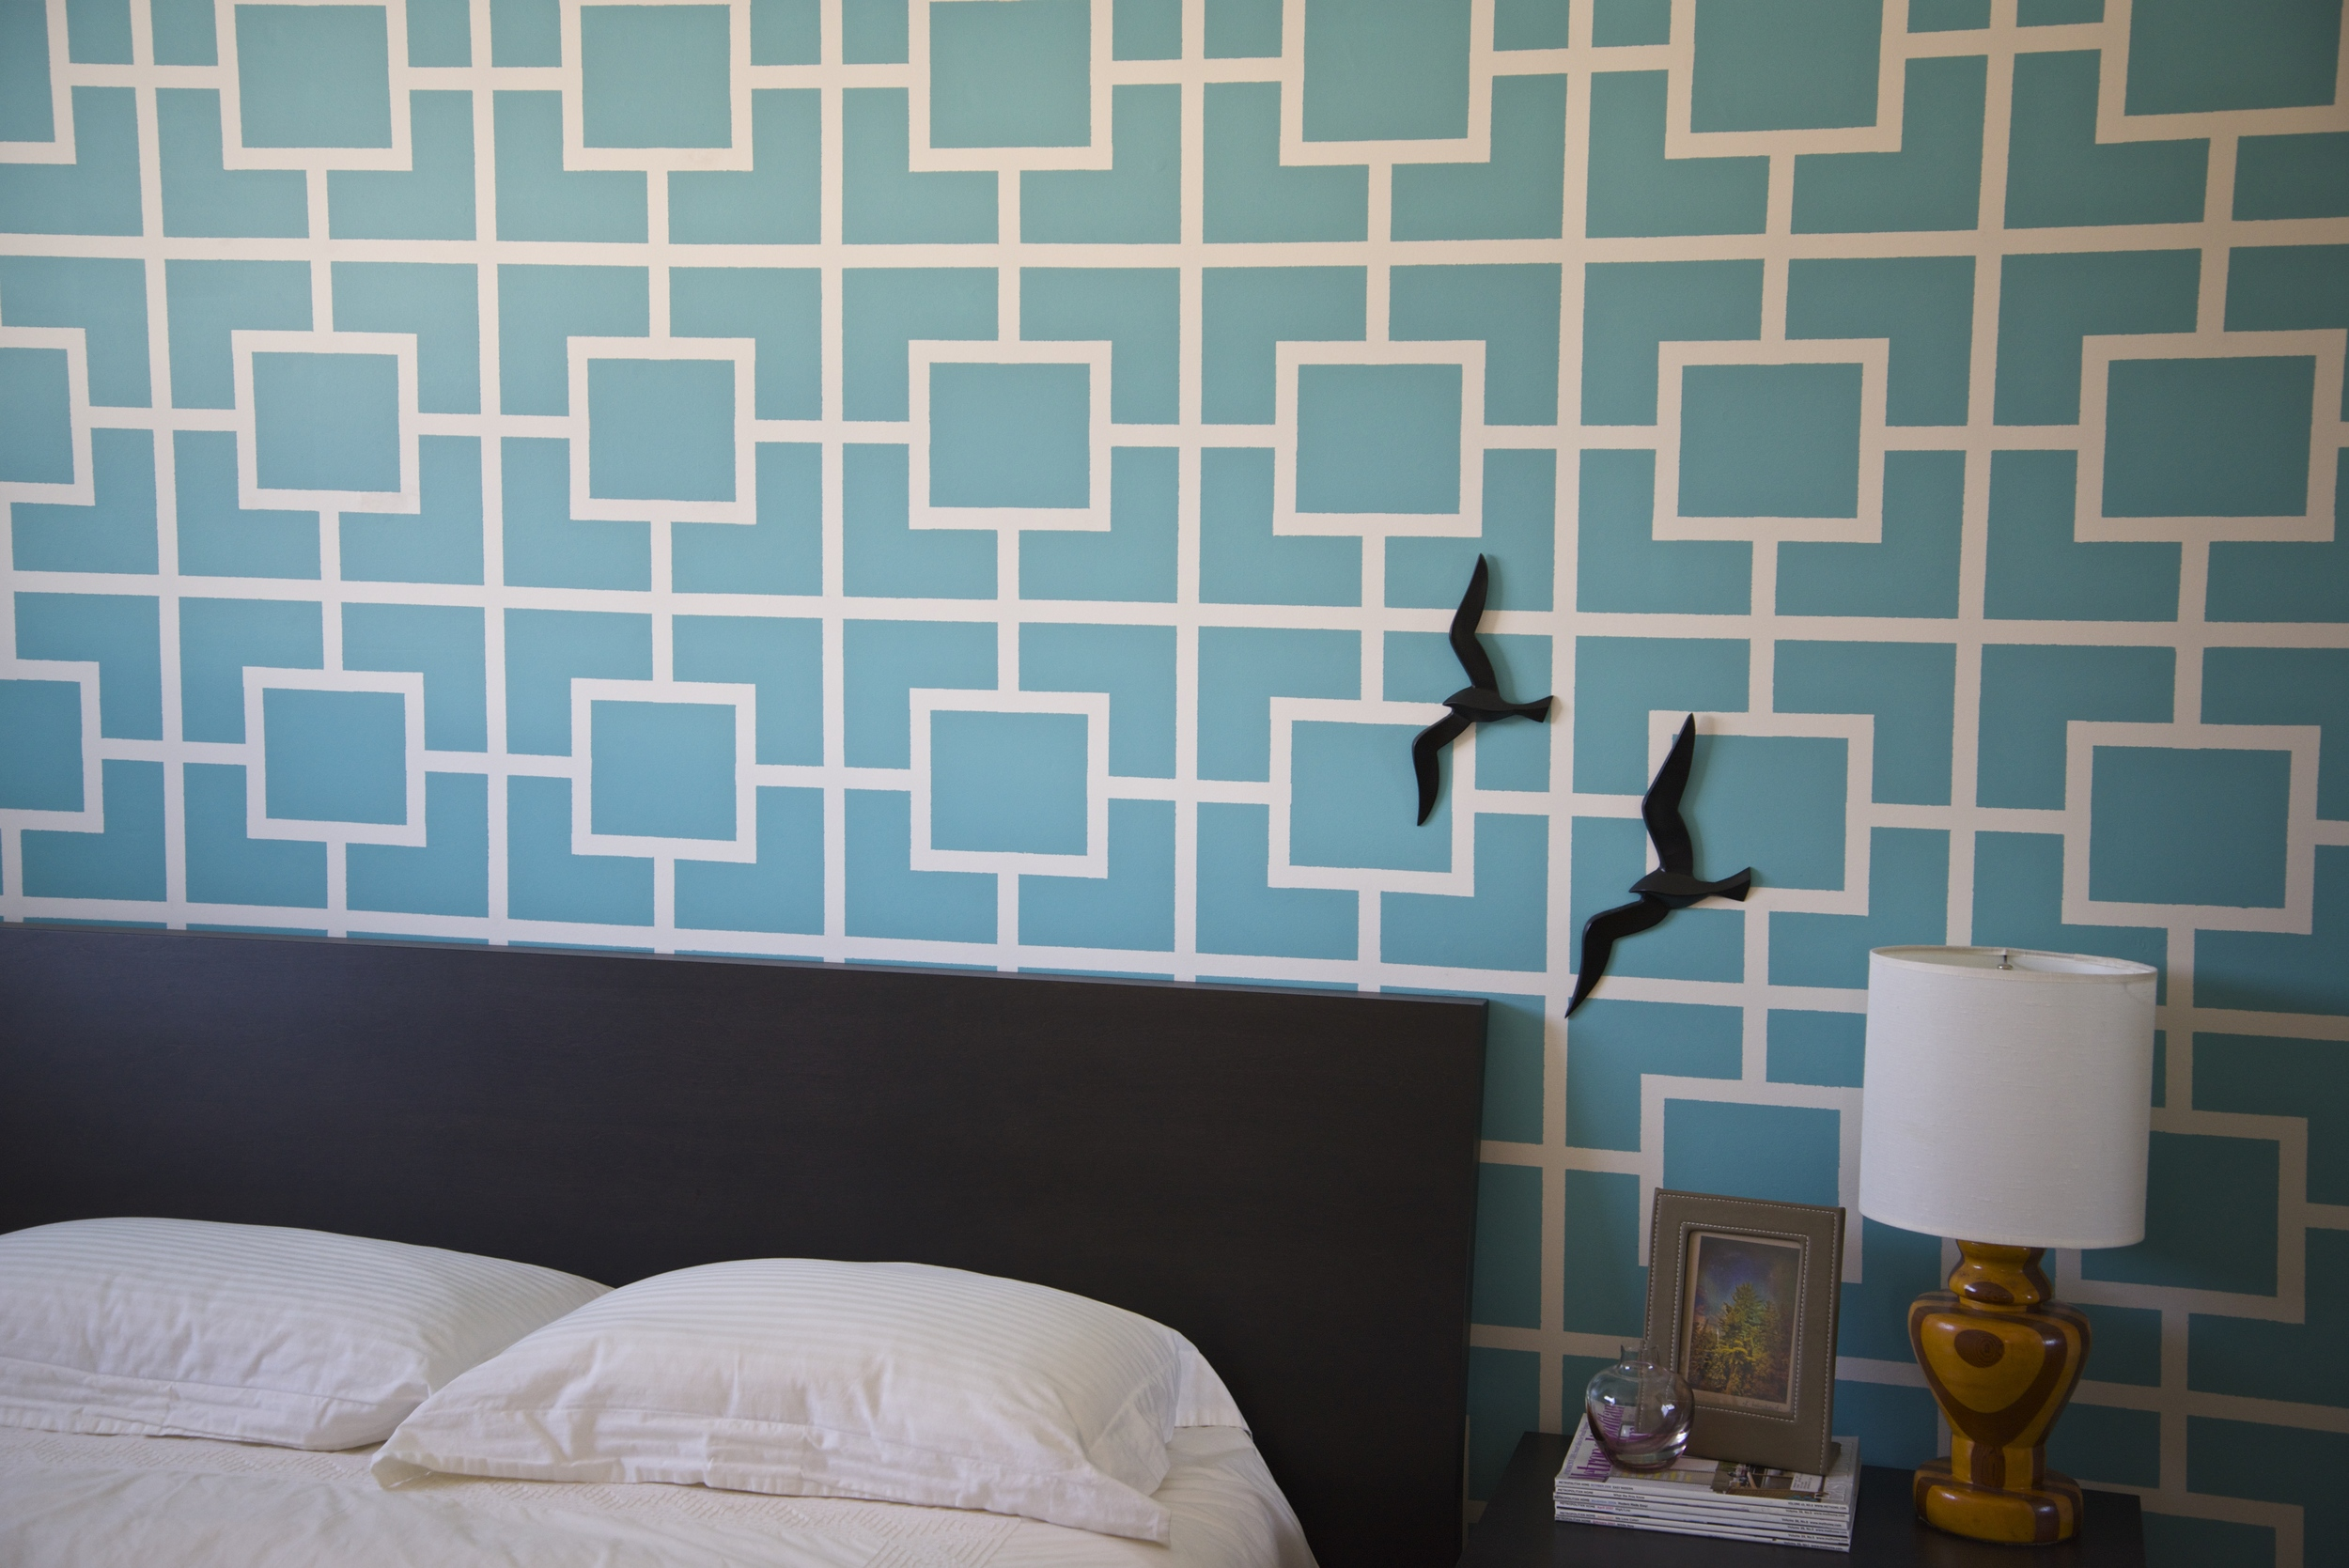 Ten years ago, this was our master bedroom (Jonathan Adler was my inspiration). This was before stencils were popular...this was all tape & laser level. I think turquoise is one of my favourite colours.